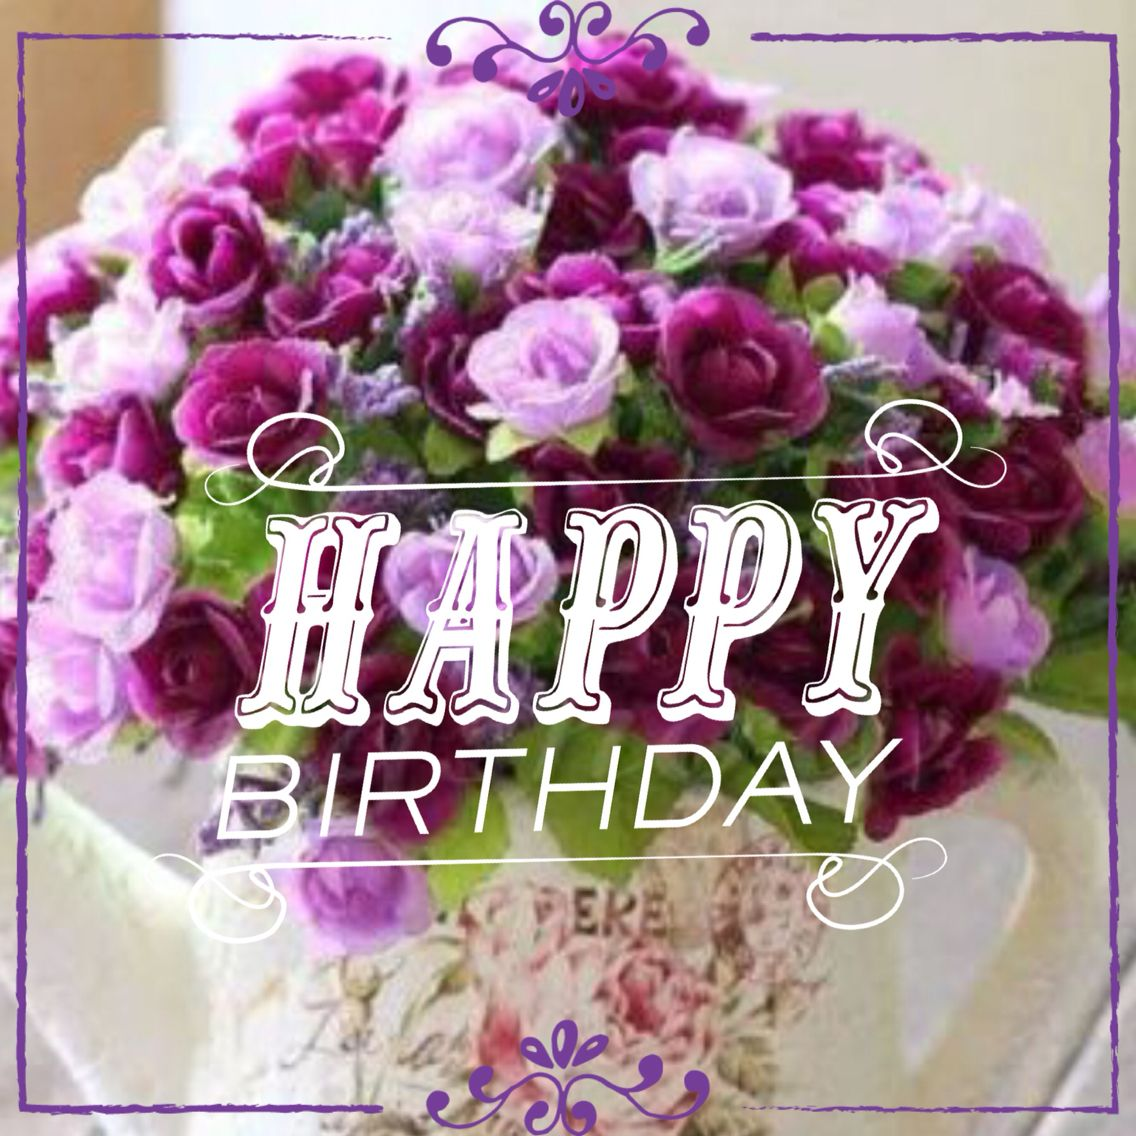 Pin by ms edd pen on birthday floral pinterest happy birthday happy birthday messages happy birthday greetings happy birthday quotes birthday wishes happy birthday flower happy birthday sister happy birthday izmirmasajfo